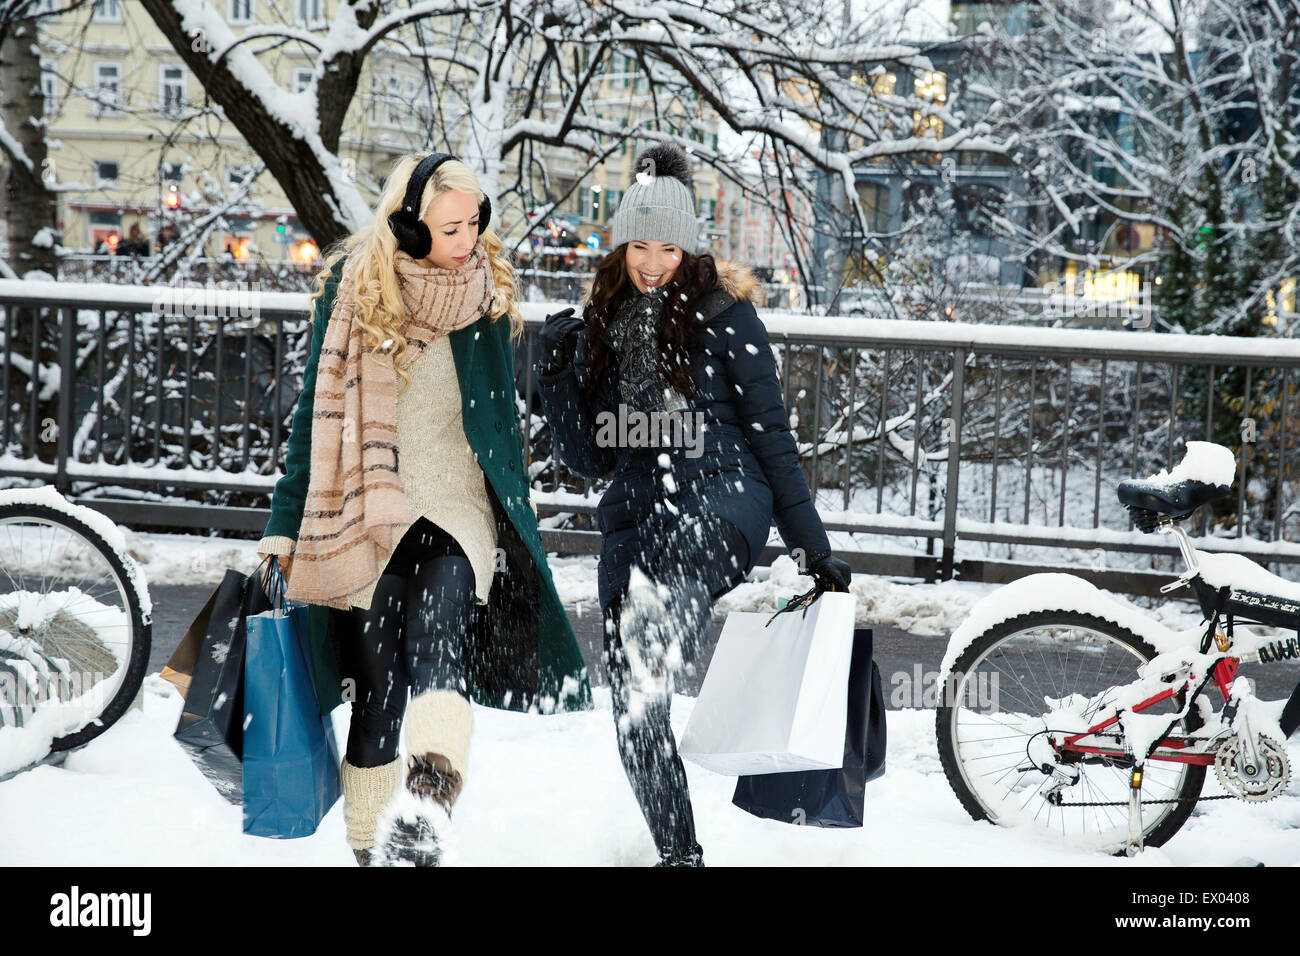 Two mid adult women in snow with shopping bags - Stock Image